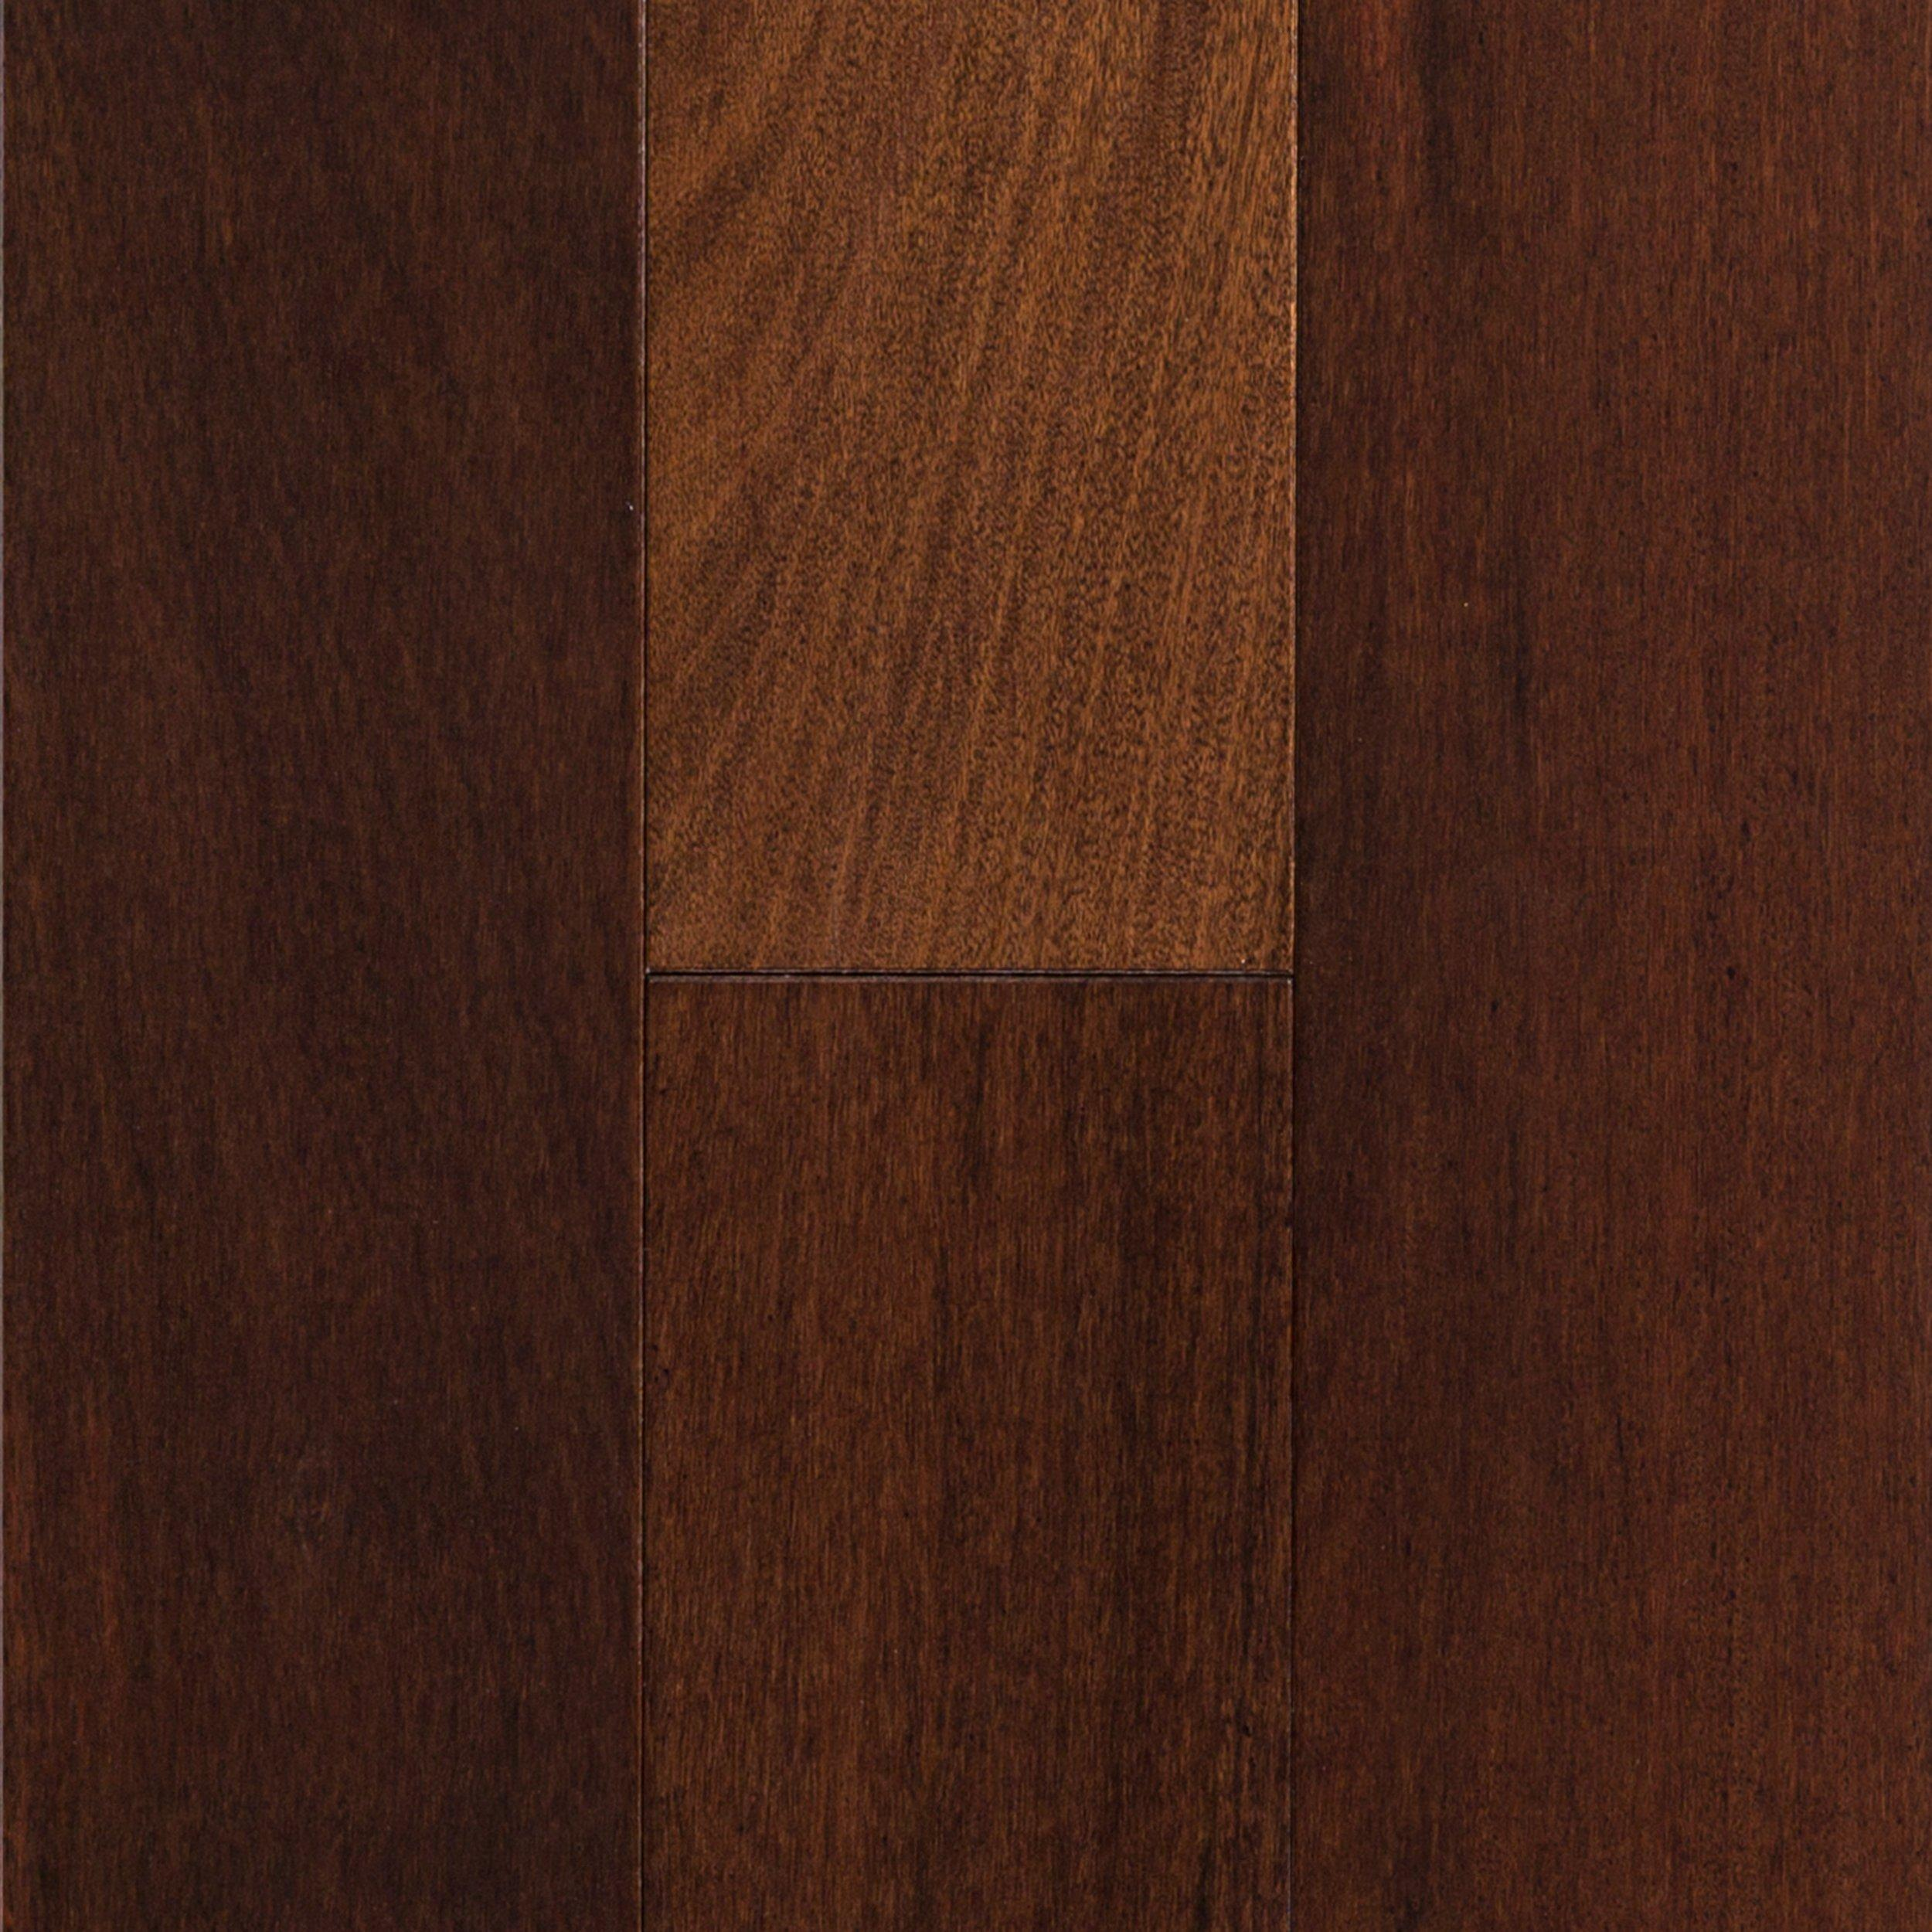 walnut products wood natural floors johnson flooring collection hardwood hfcentre recommended forevertuff brazilian